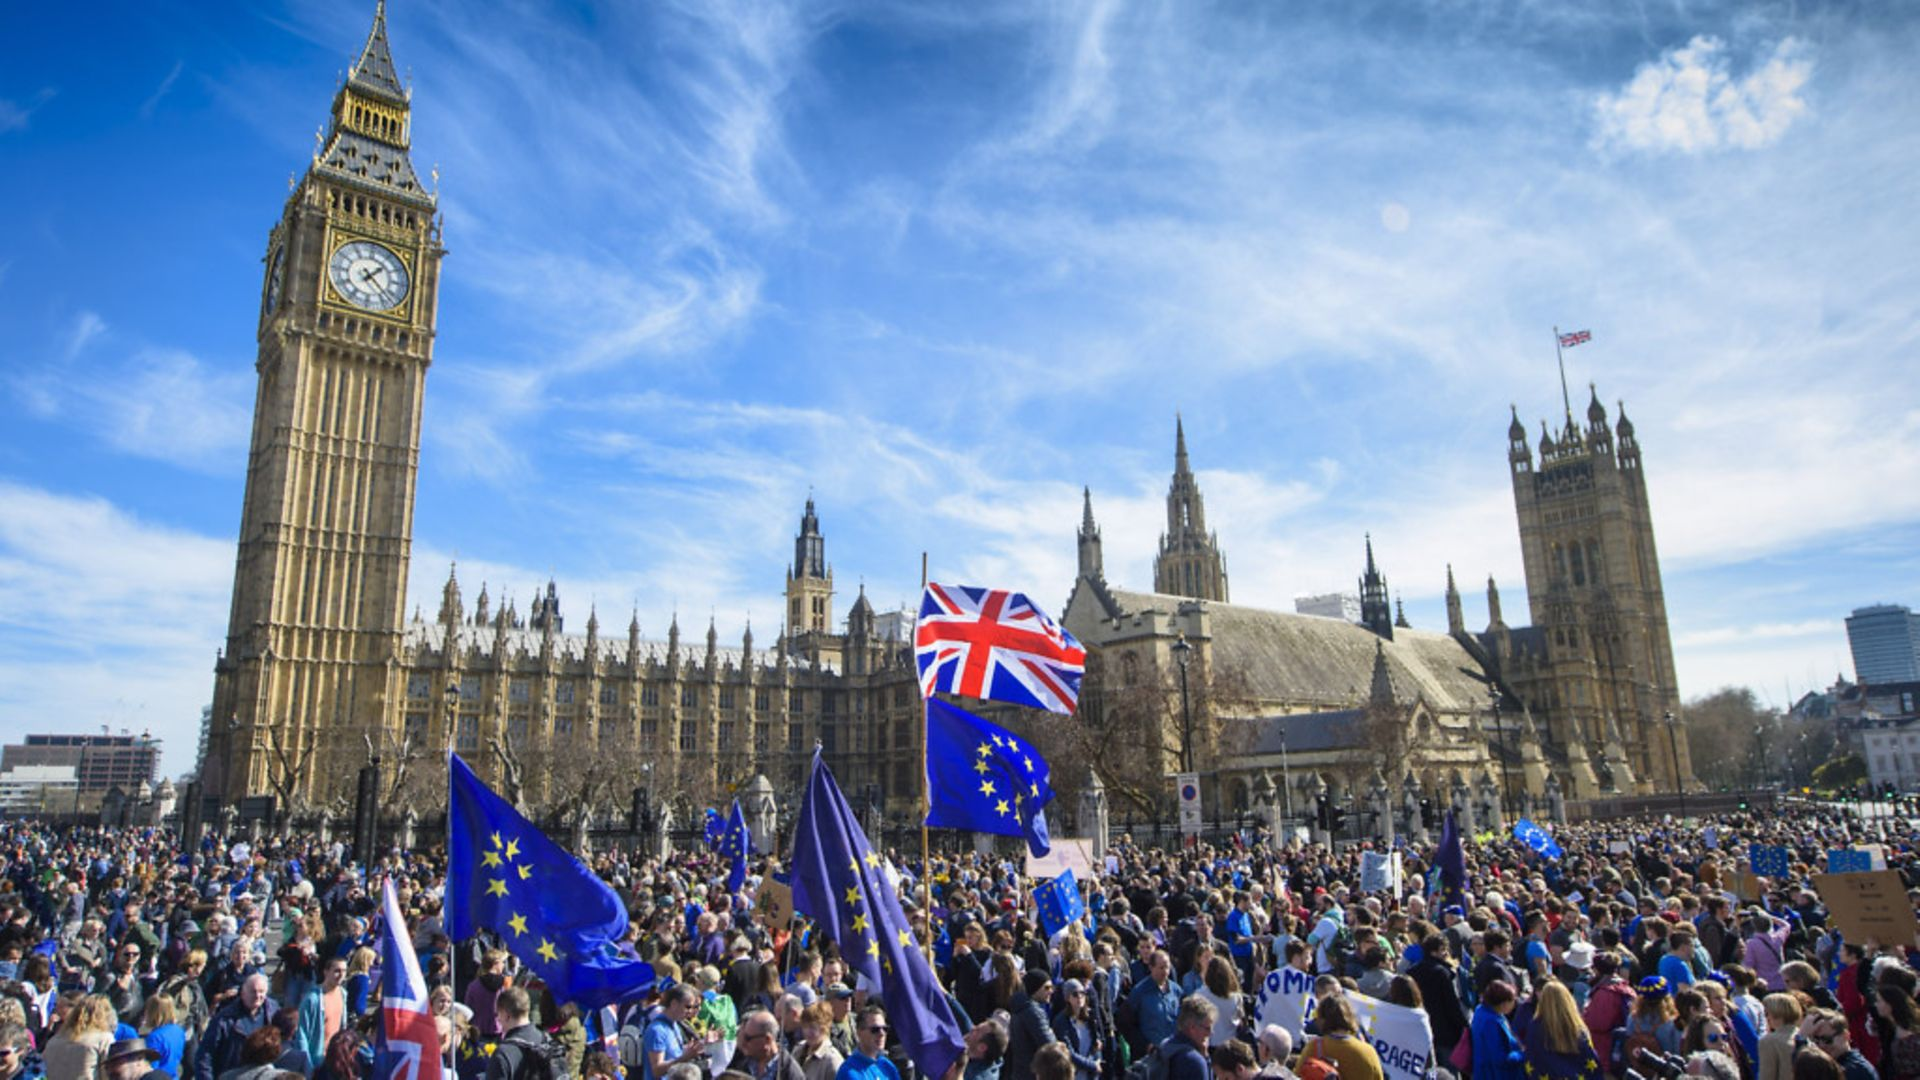 Anti-Brexit campaigners outside the Houses of Parliament - Credit: Empics Entertainment